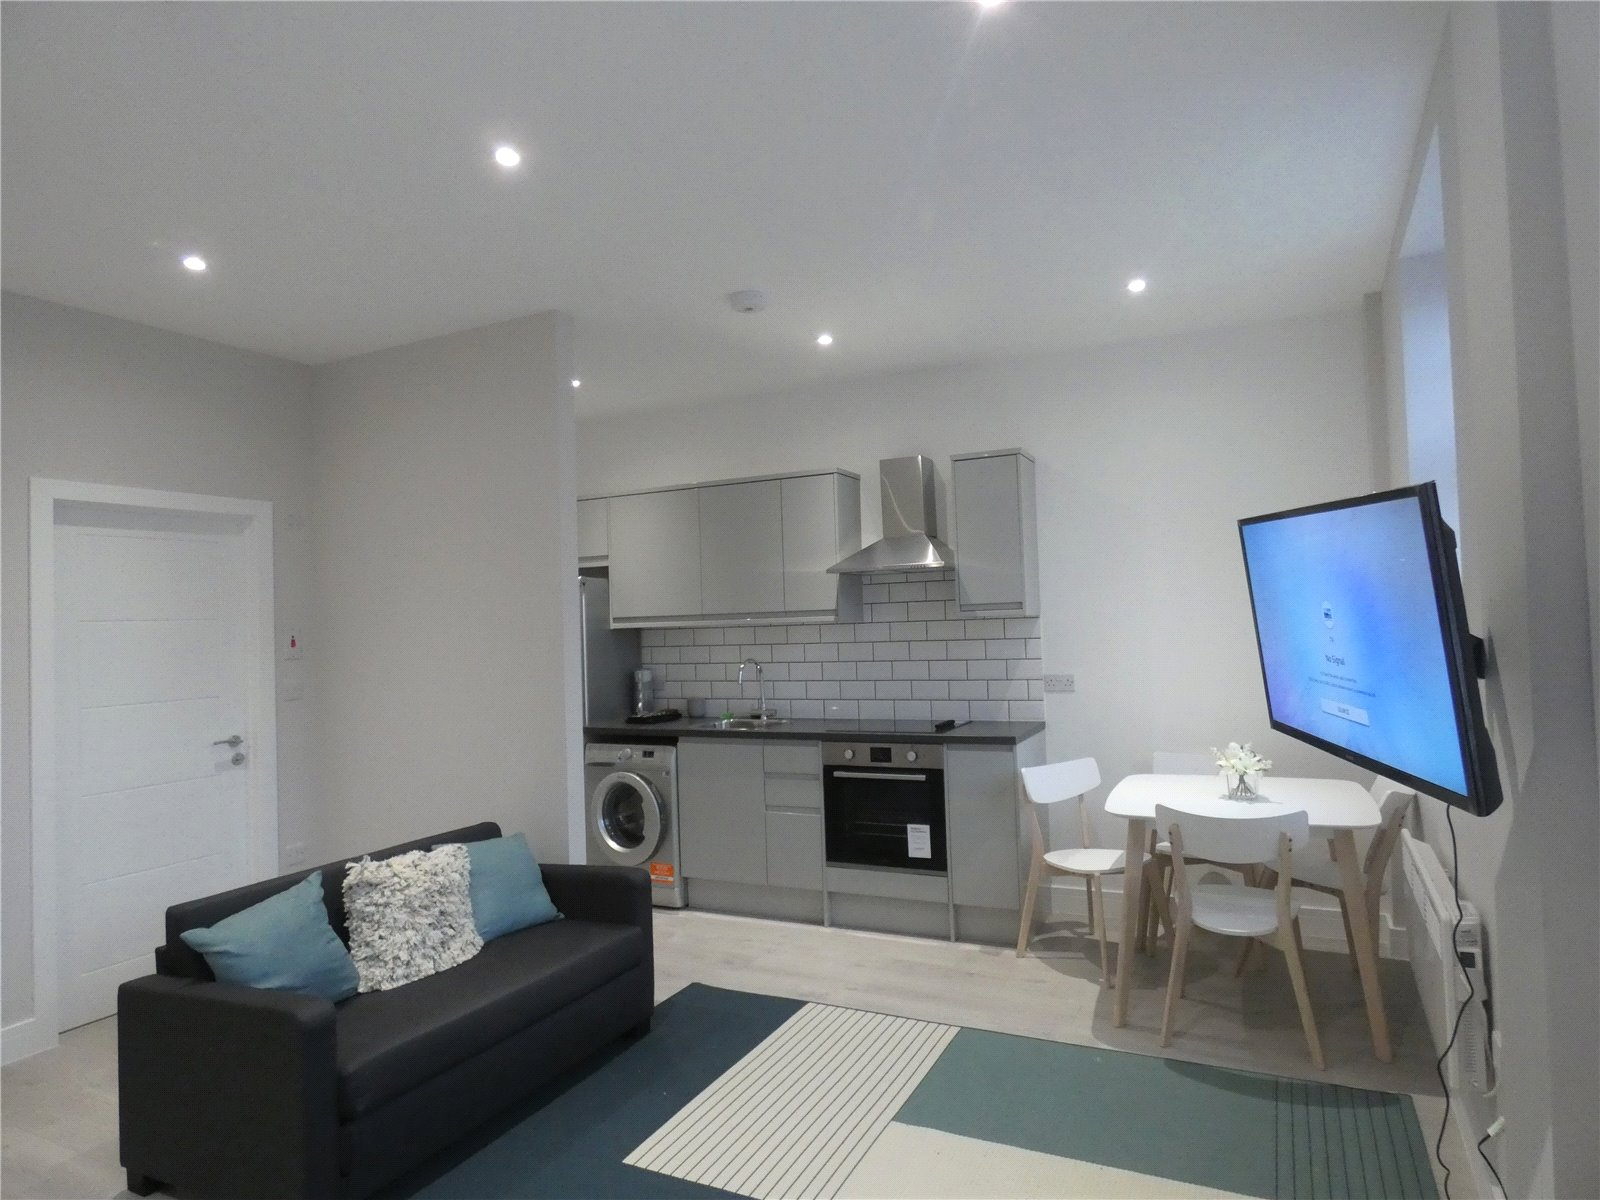 Apartment to rent in Whetstone, N20 9HW  - Property Image 2